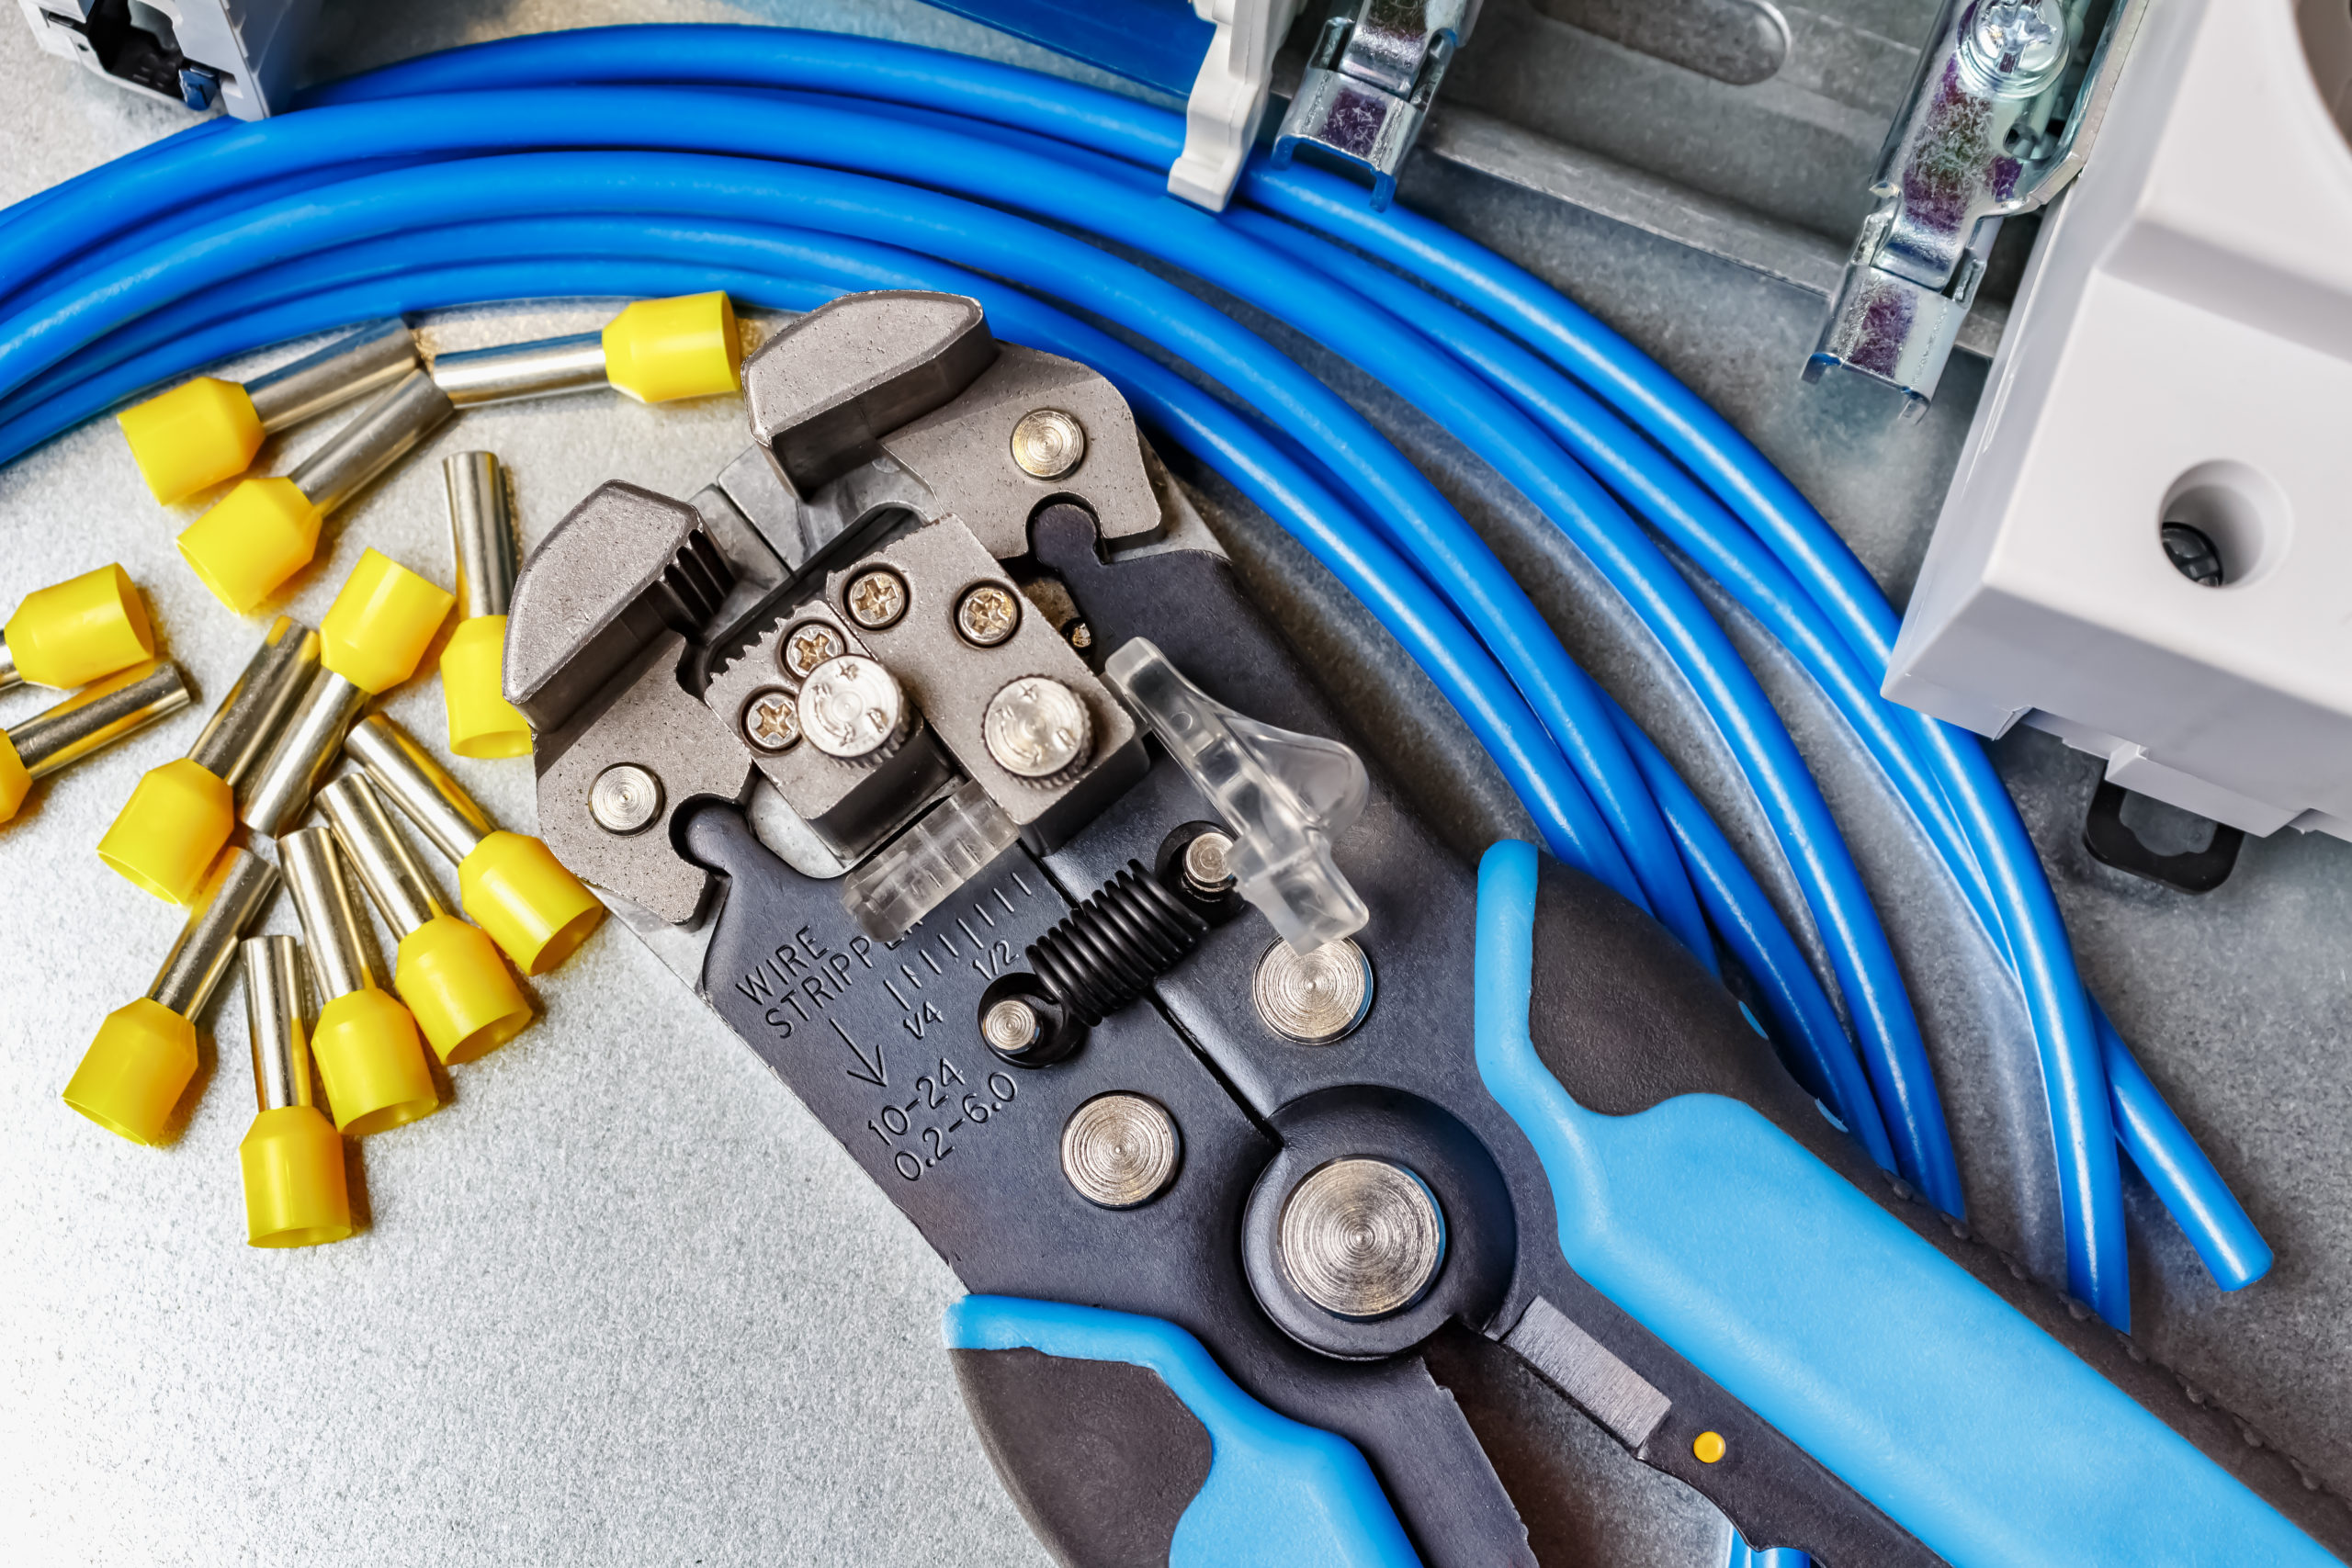 10 Best Wire Strippers [Buying Guide]